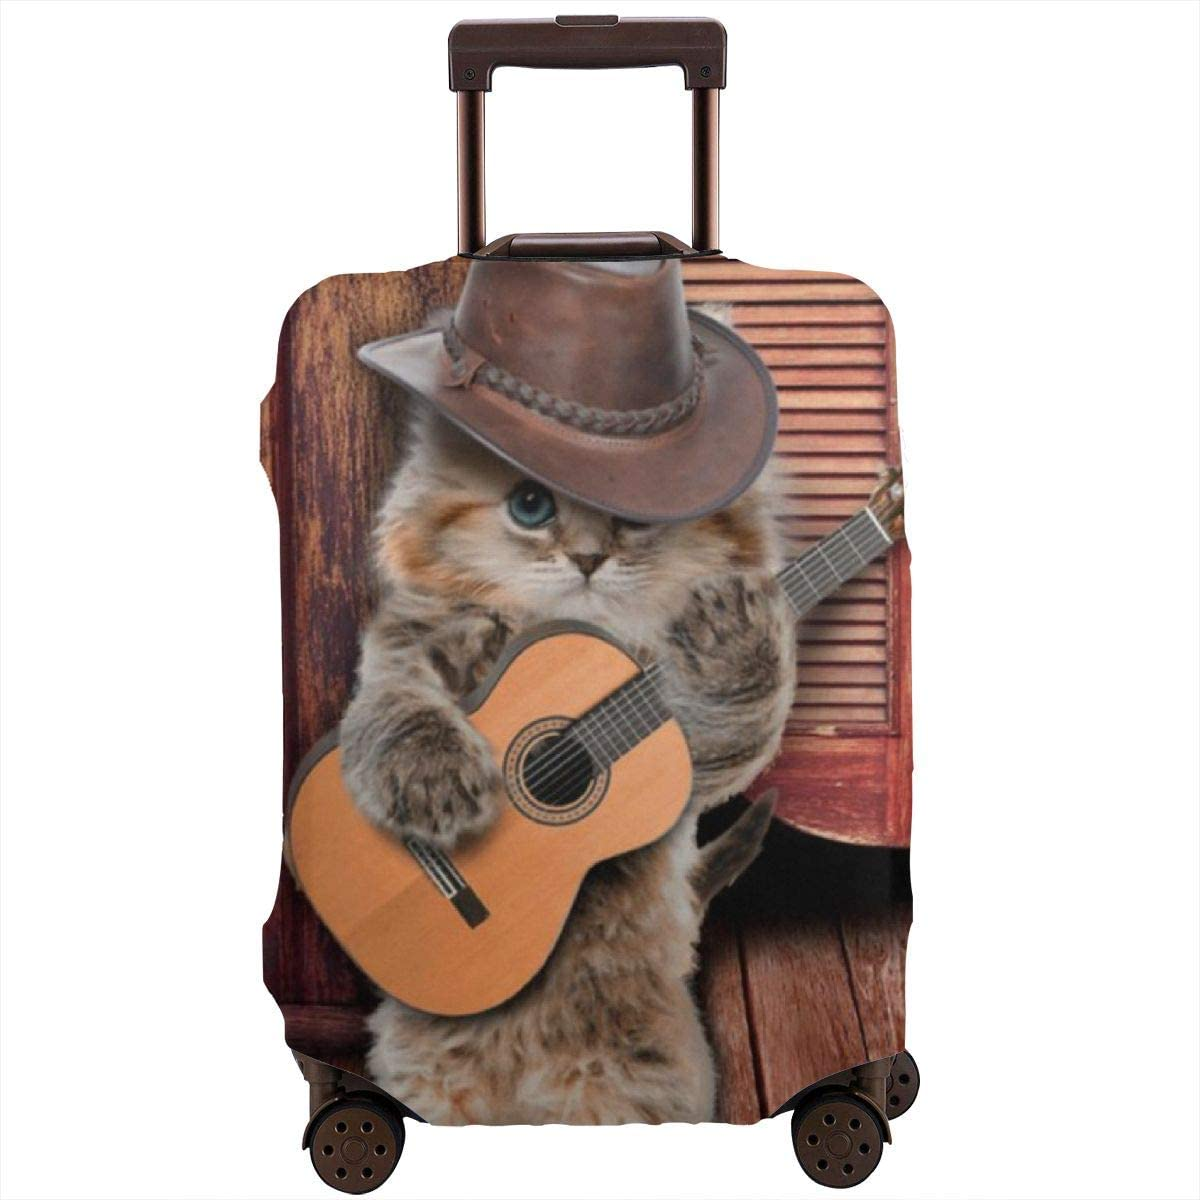 Luggage Cover Country Funny Guitarist Cat Play Guitar Protective Travel Trunk Case Elastic Luggage Suitcase Protector Cover